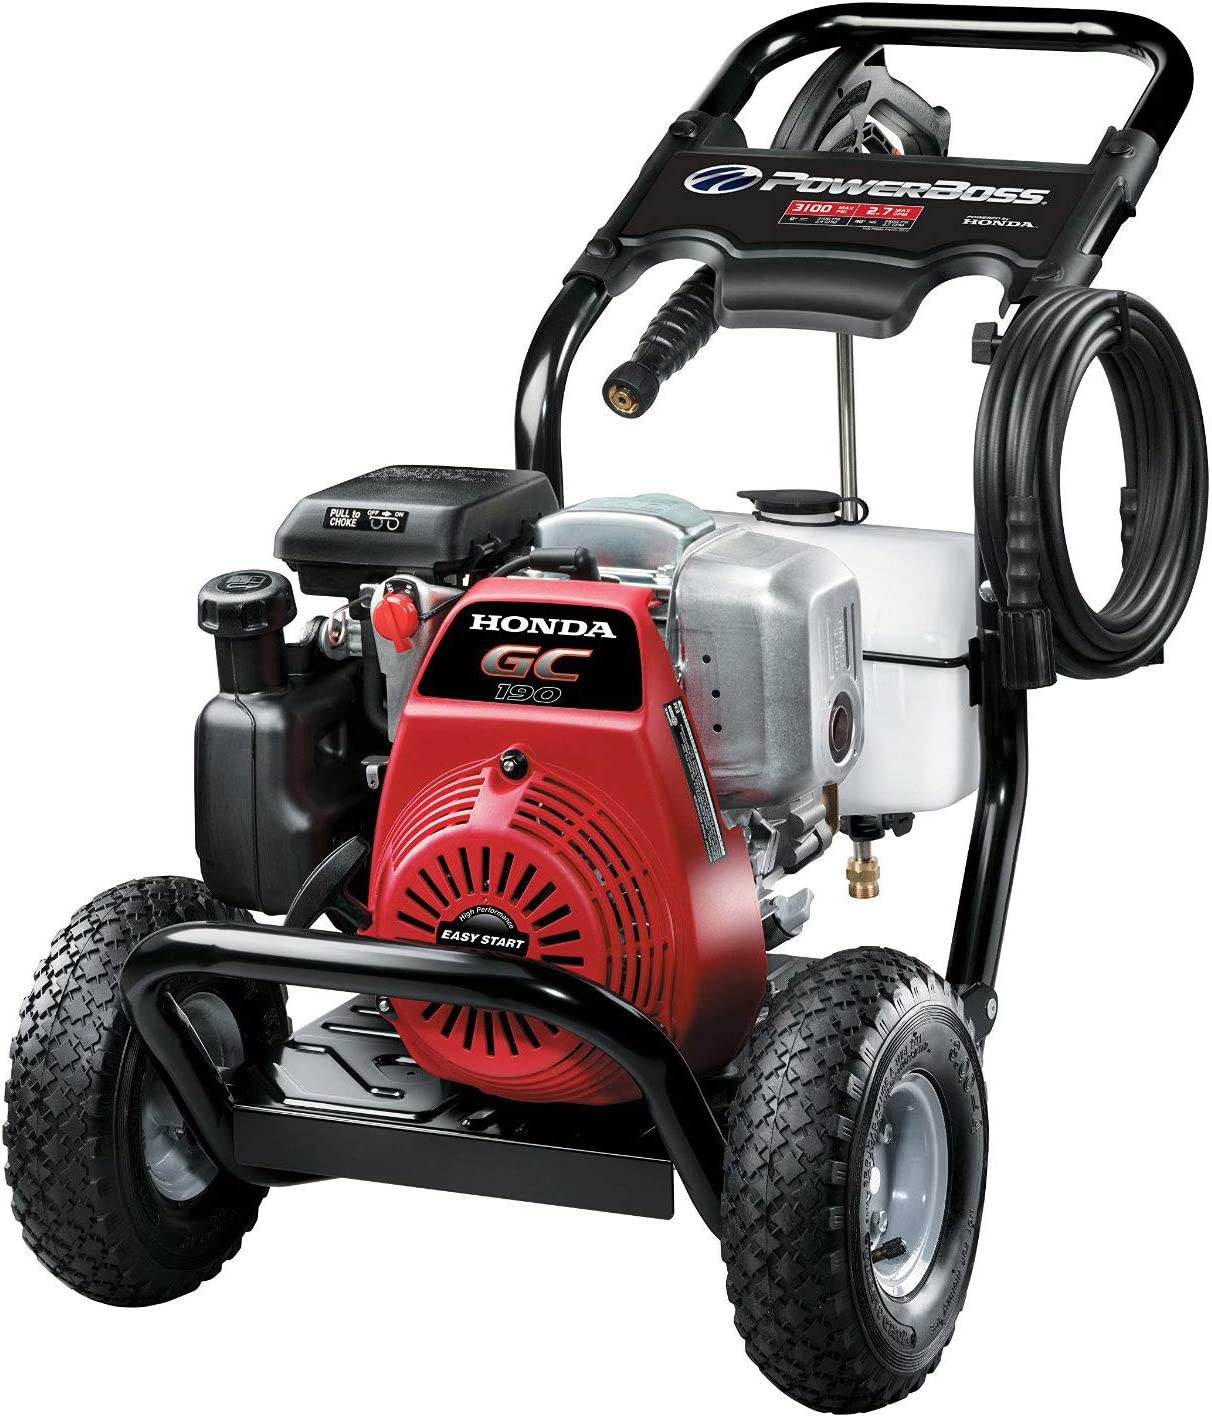 PowerBoss 3100 MAX PSI at 2.4 GPM Gas Pressure Washer with Detergent Tank